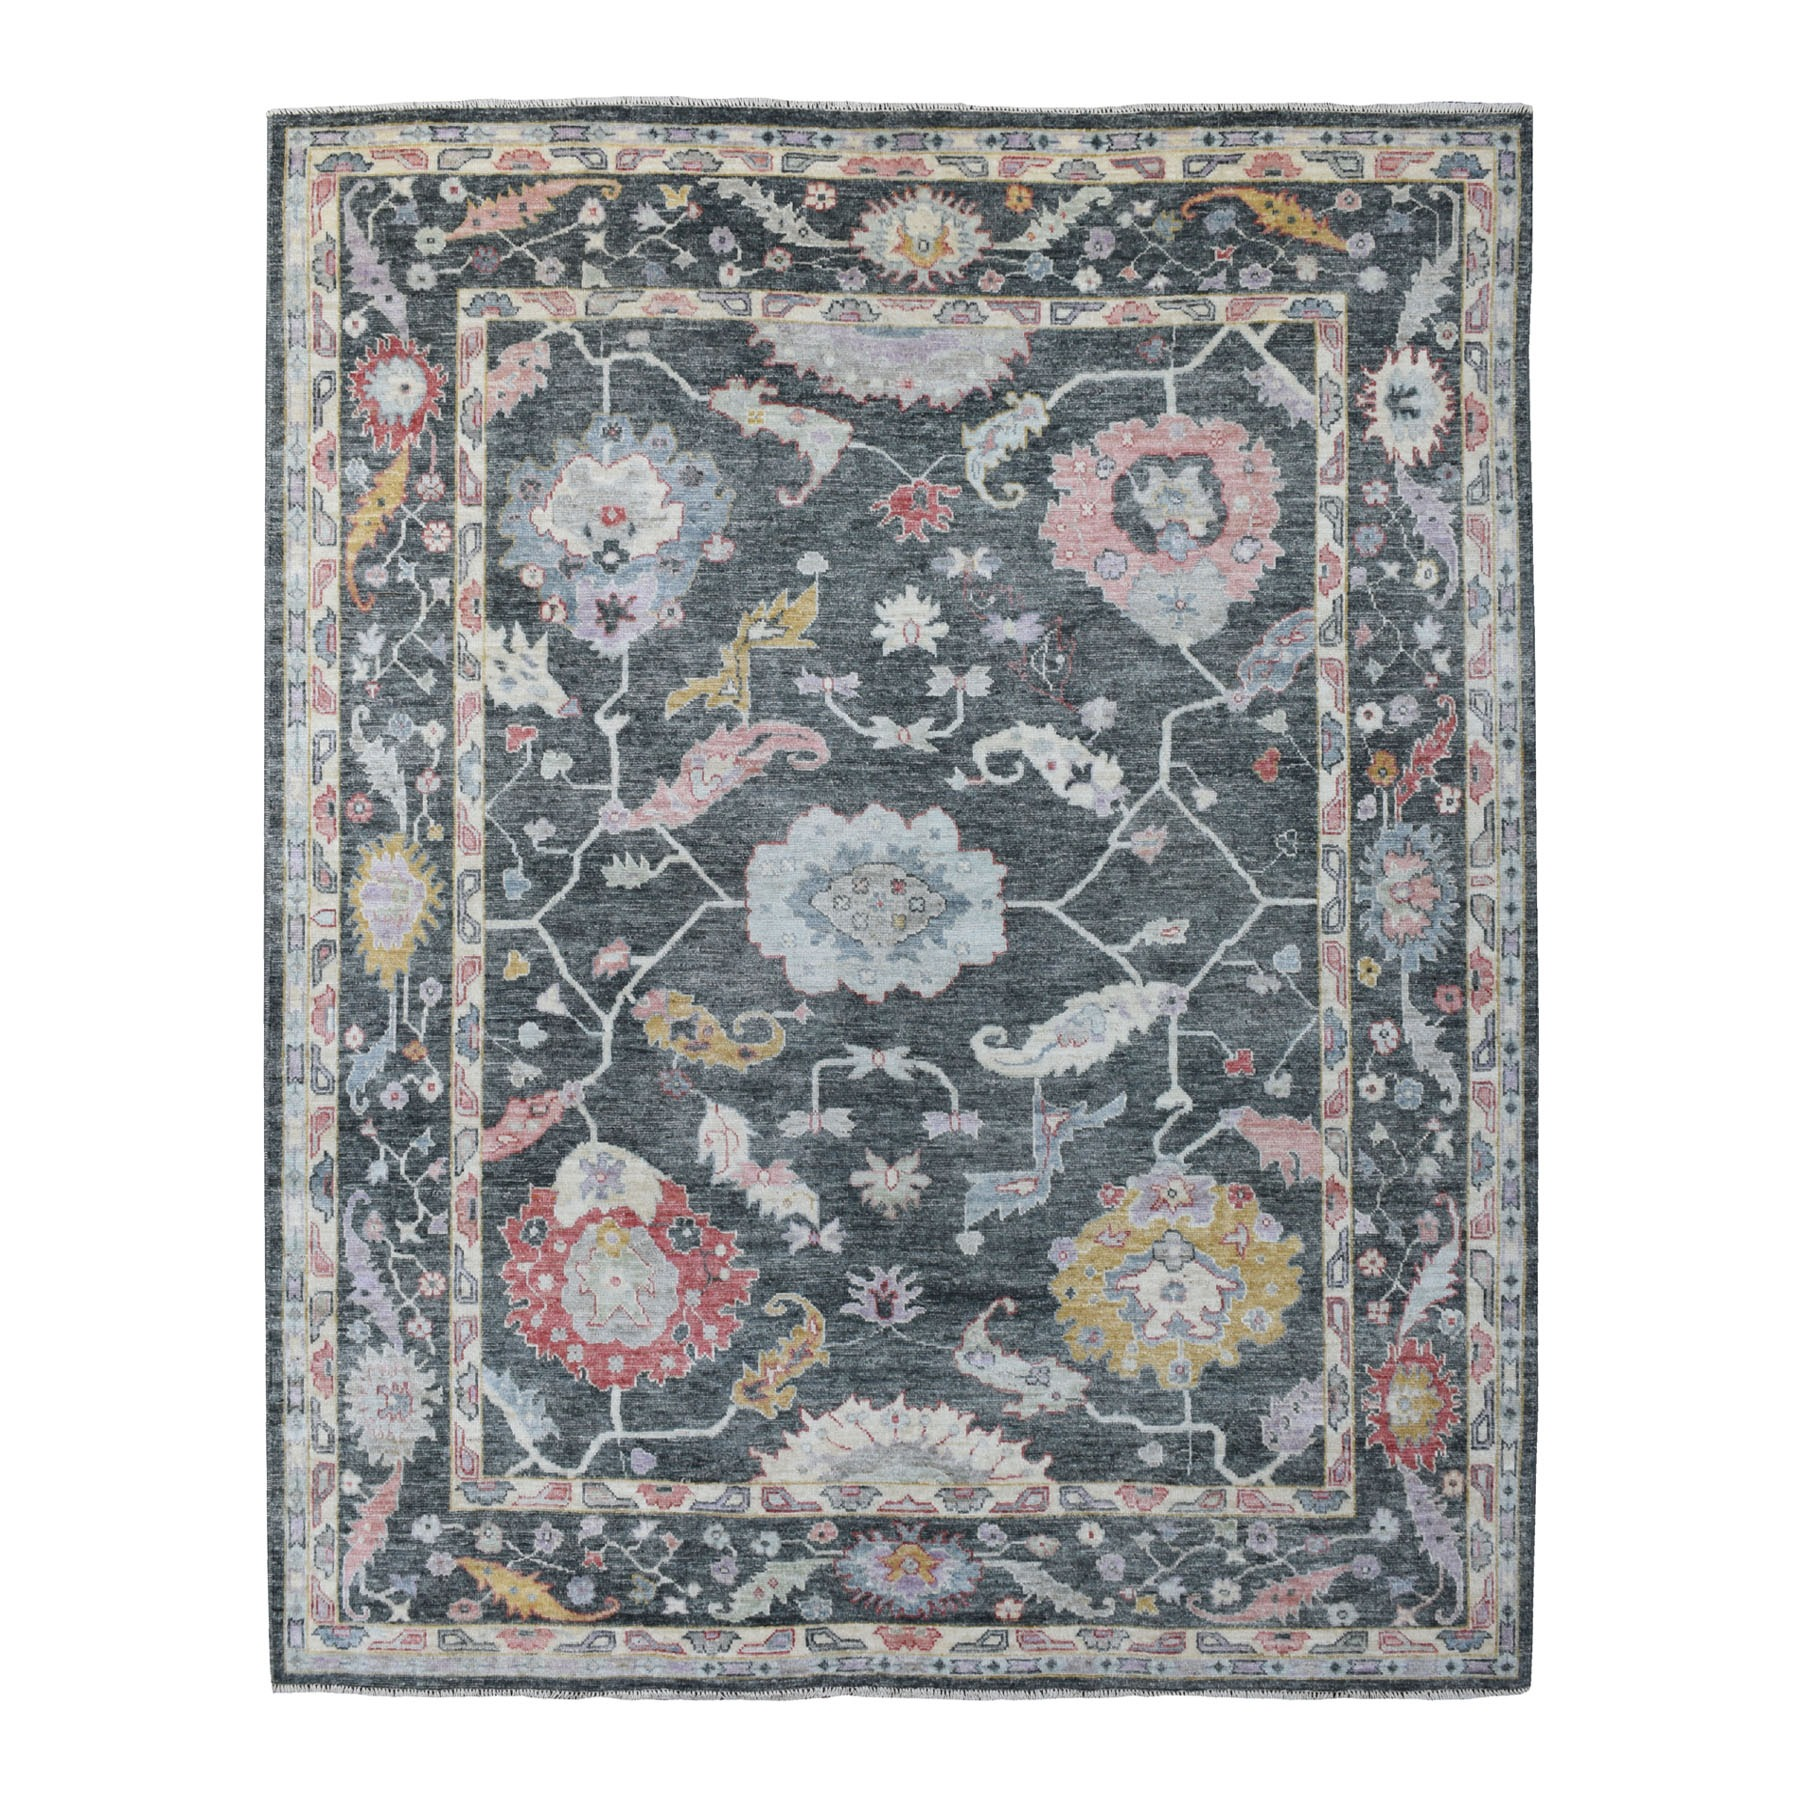 "8'2""x9'10"" Angora Oushak Charcoal Black With Pop Of Color Hand Knotted Pliable Wool Oriental Rug"